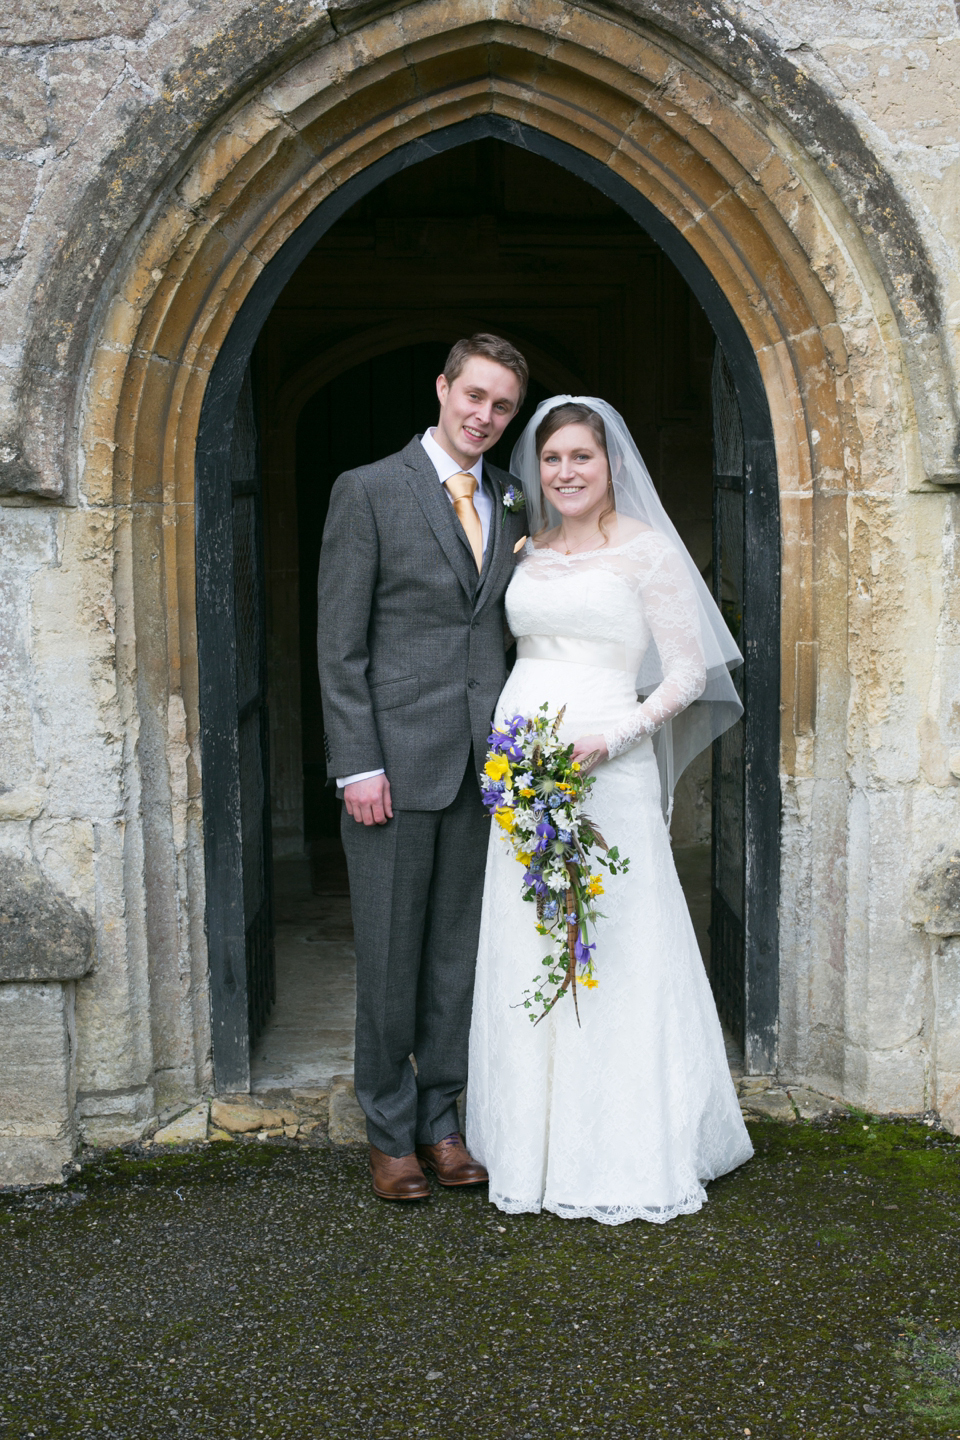 A Lovely Relaxed Late Winter Wedding For A Pregnant Bride And Her